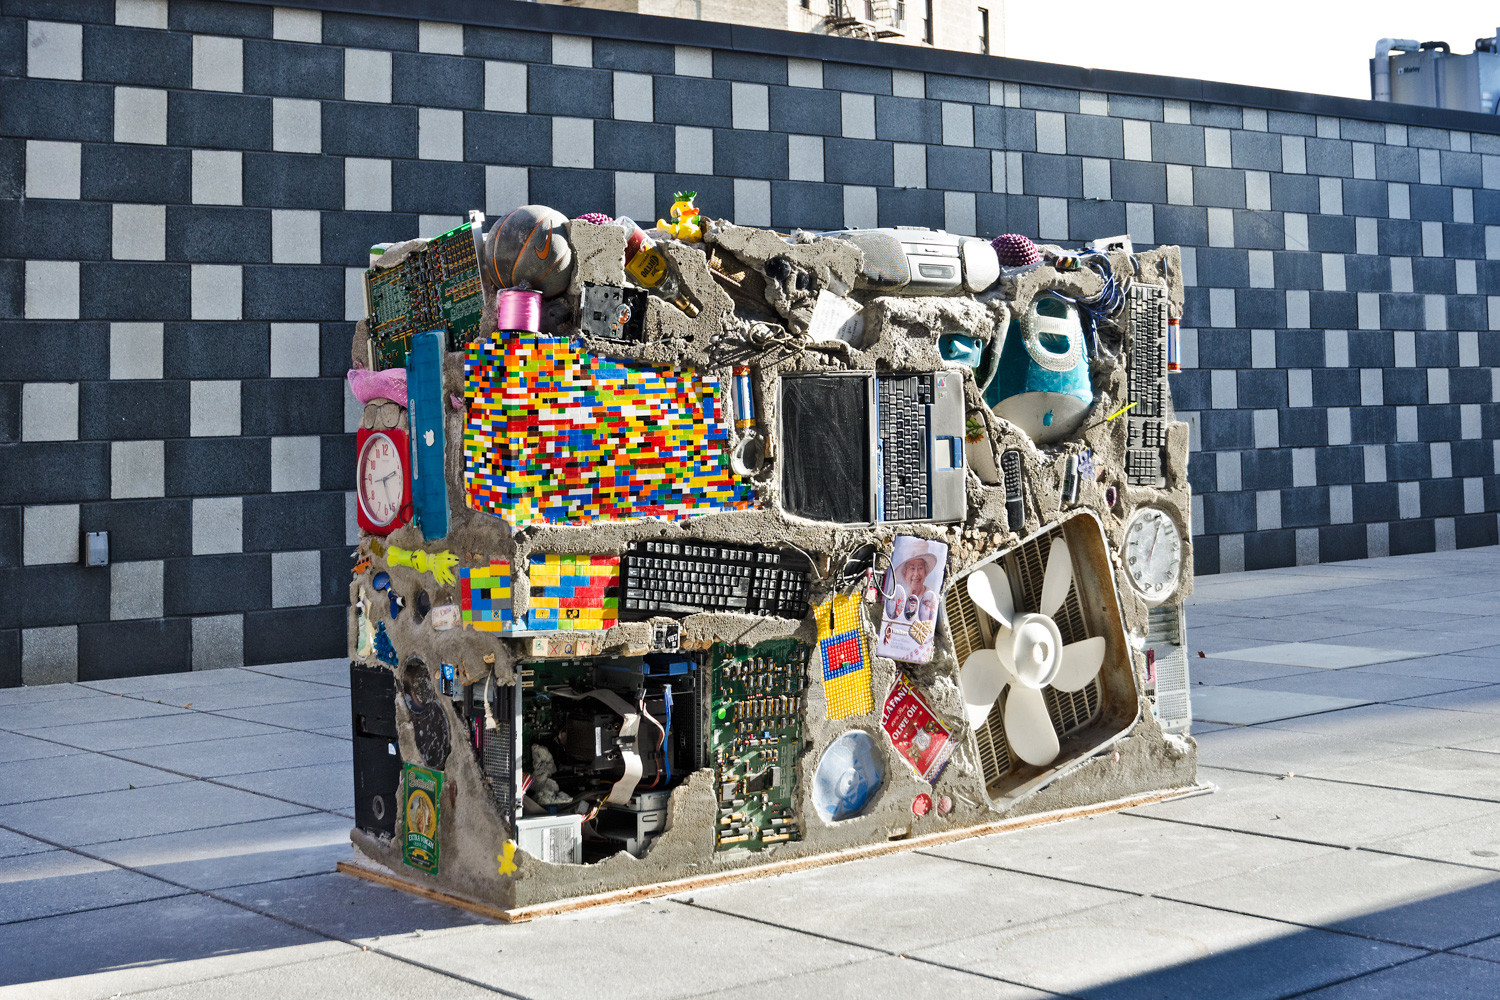 'Garbage Wall' is just a collection of trash. But to artist Gordon Matta-Clark, it expresses his concerns for homelessness in 1971.